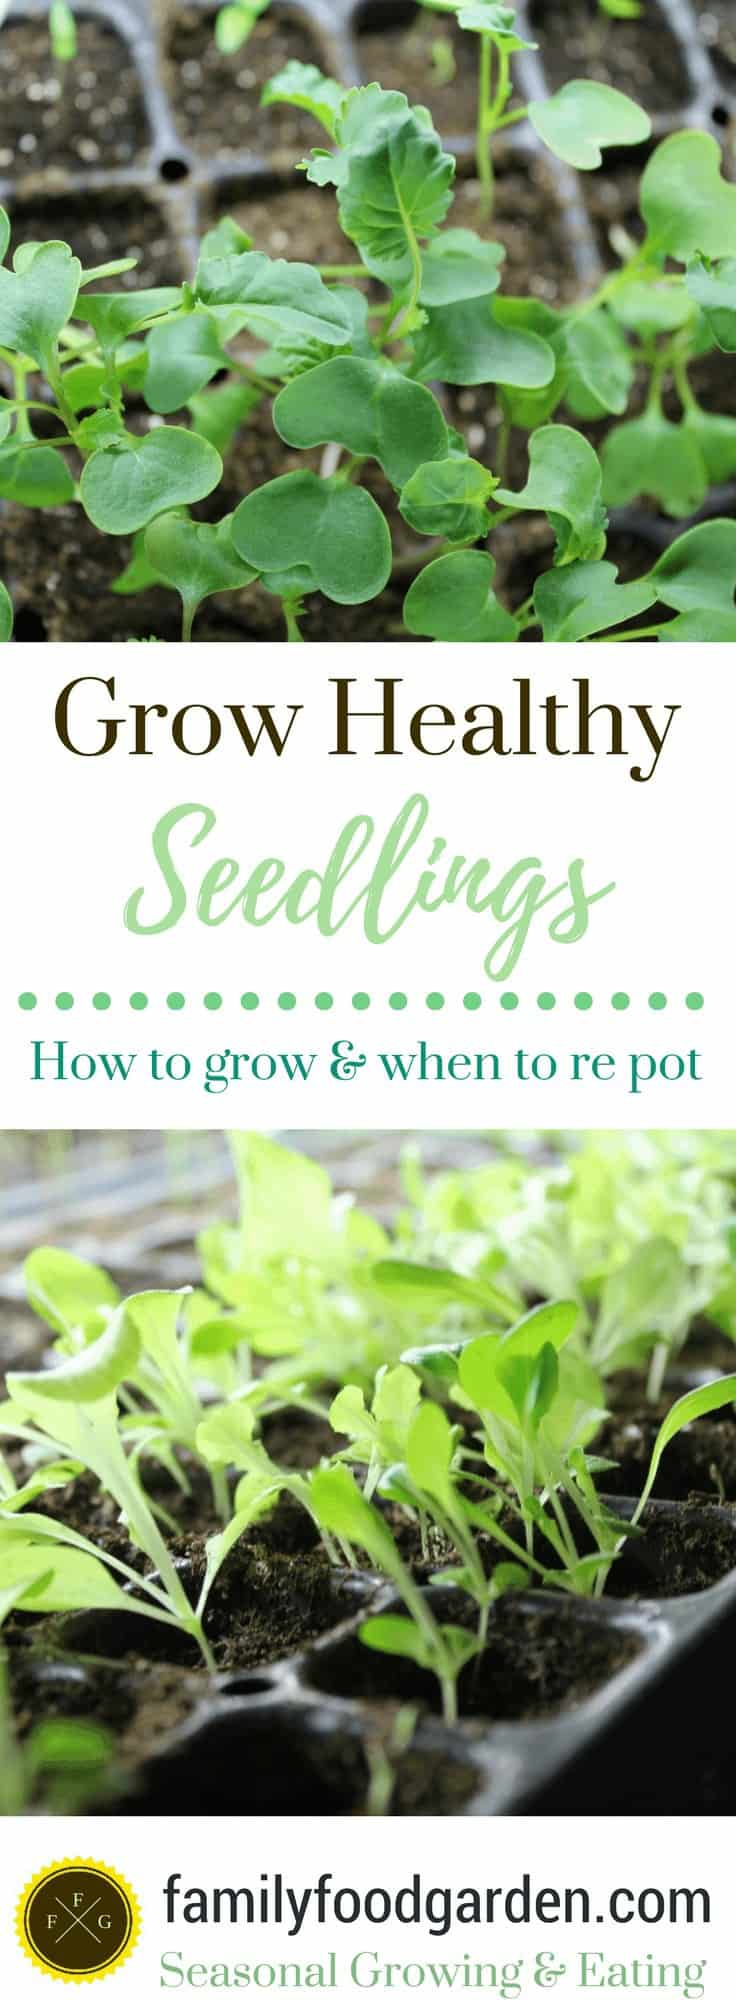 Grow healthy seedlings